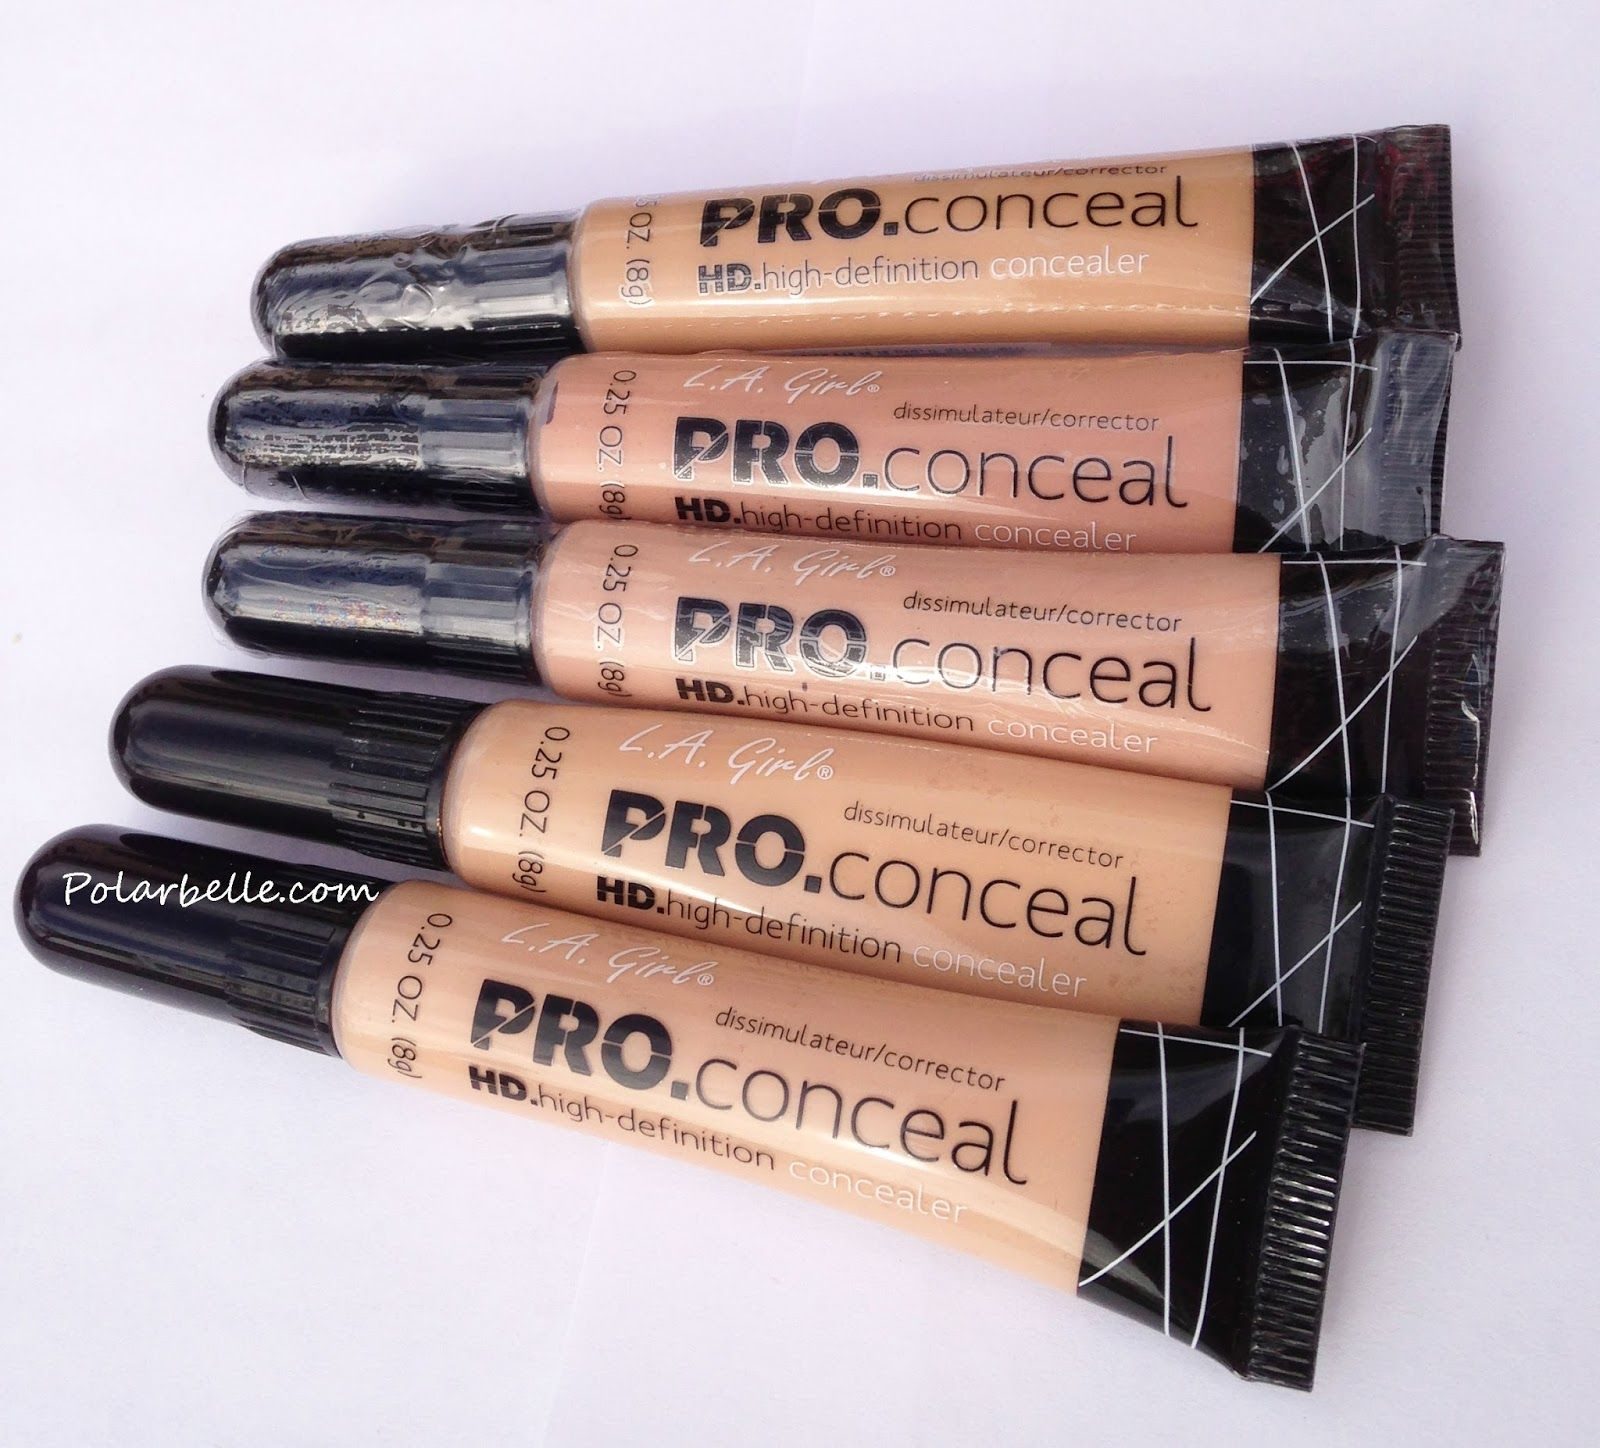 LA Girl Pro Conceal HD High Definition Concealer Swatches and Review